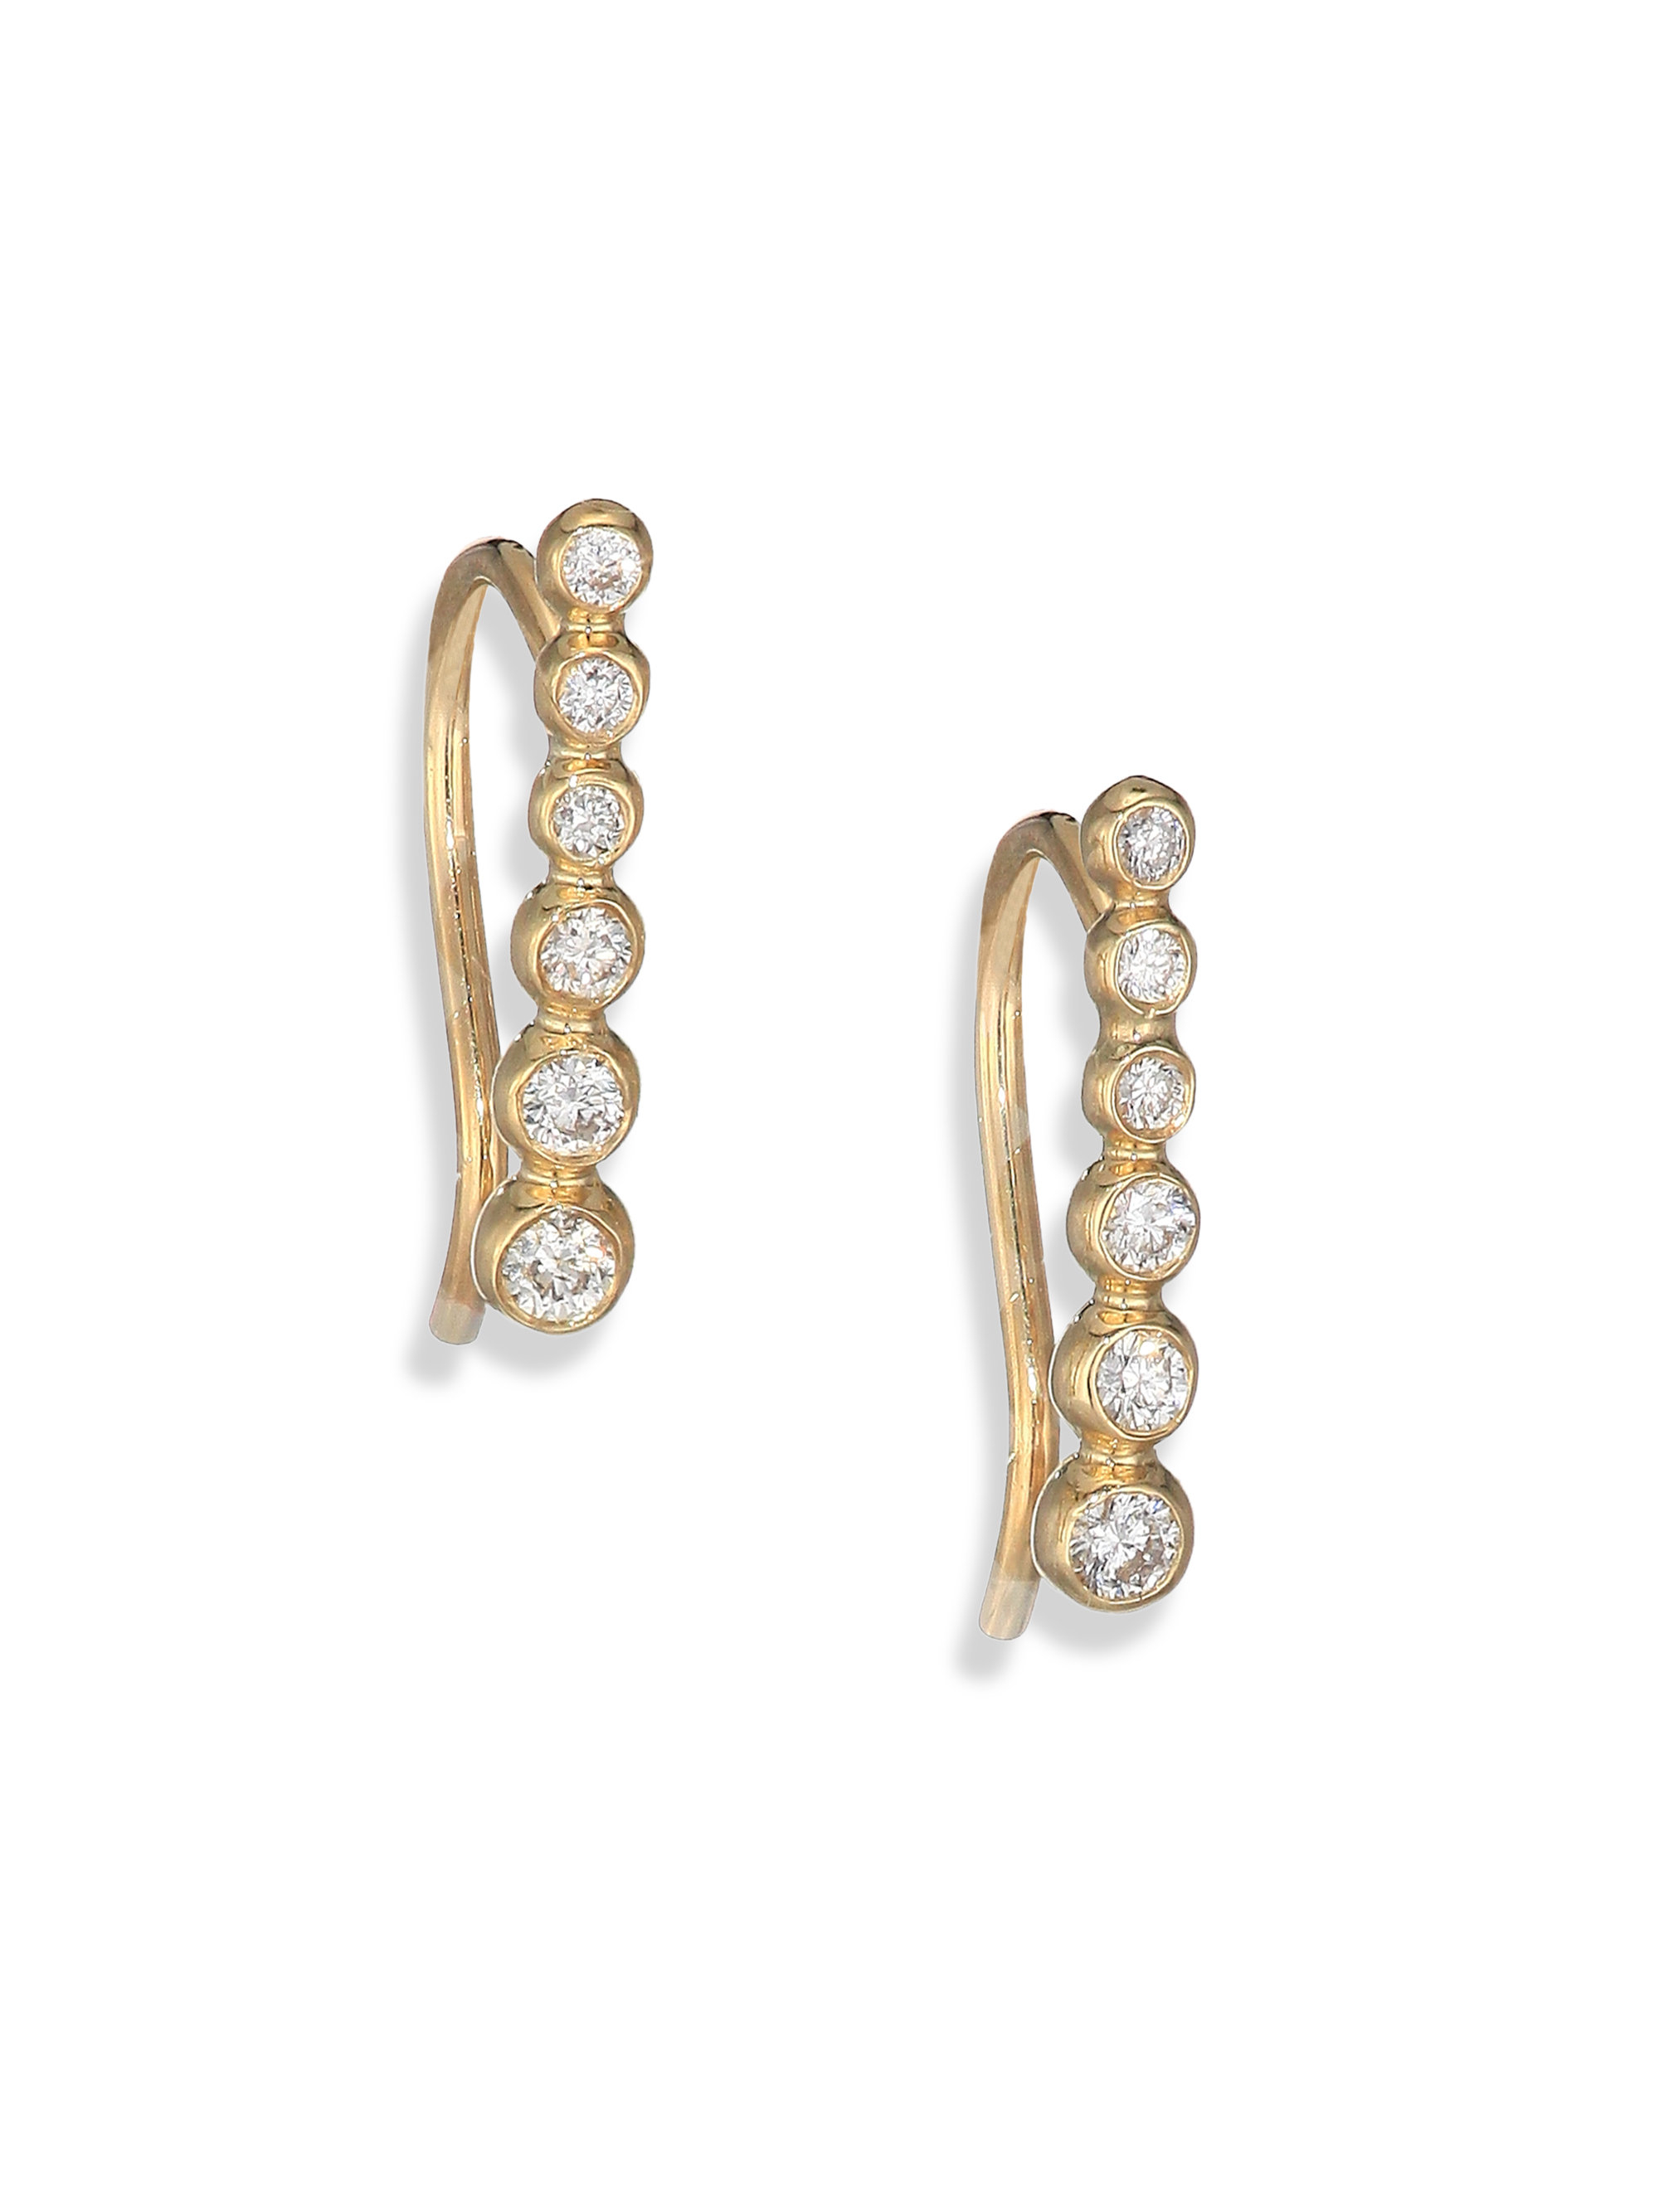 Mizuki 14k Gold Three-Diamond Bar Earrings 9pYUKX8K3J